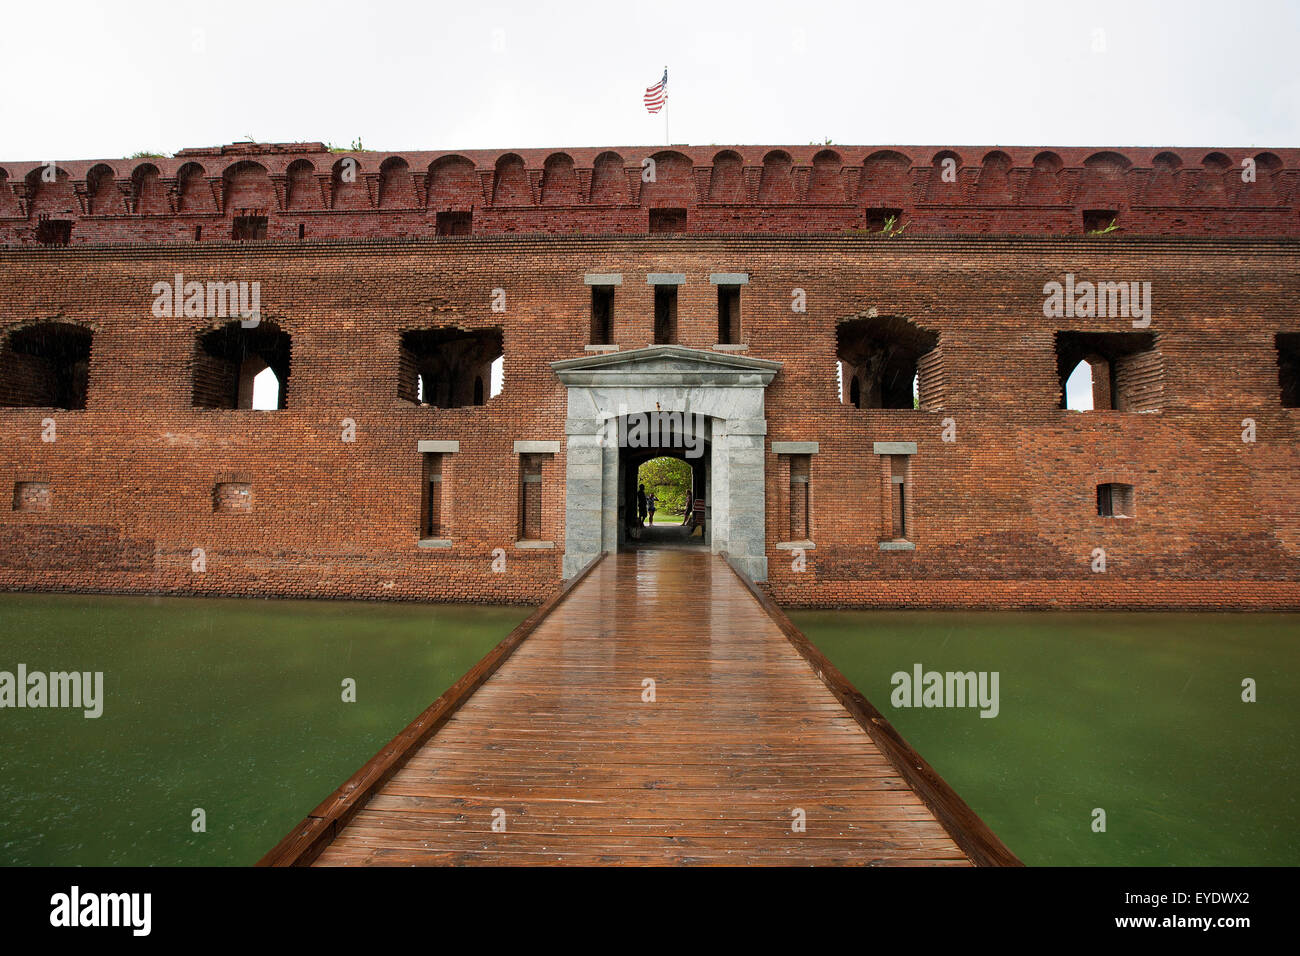 Entrance across a moat into Fort Jefferson, Dry Tortugas National Park, Florida, United States of America - Stock Image